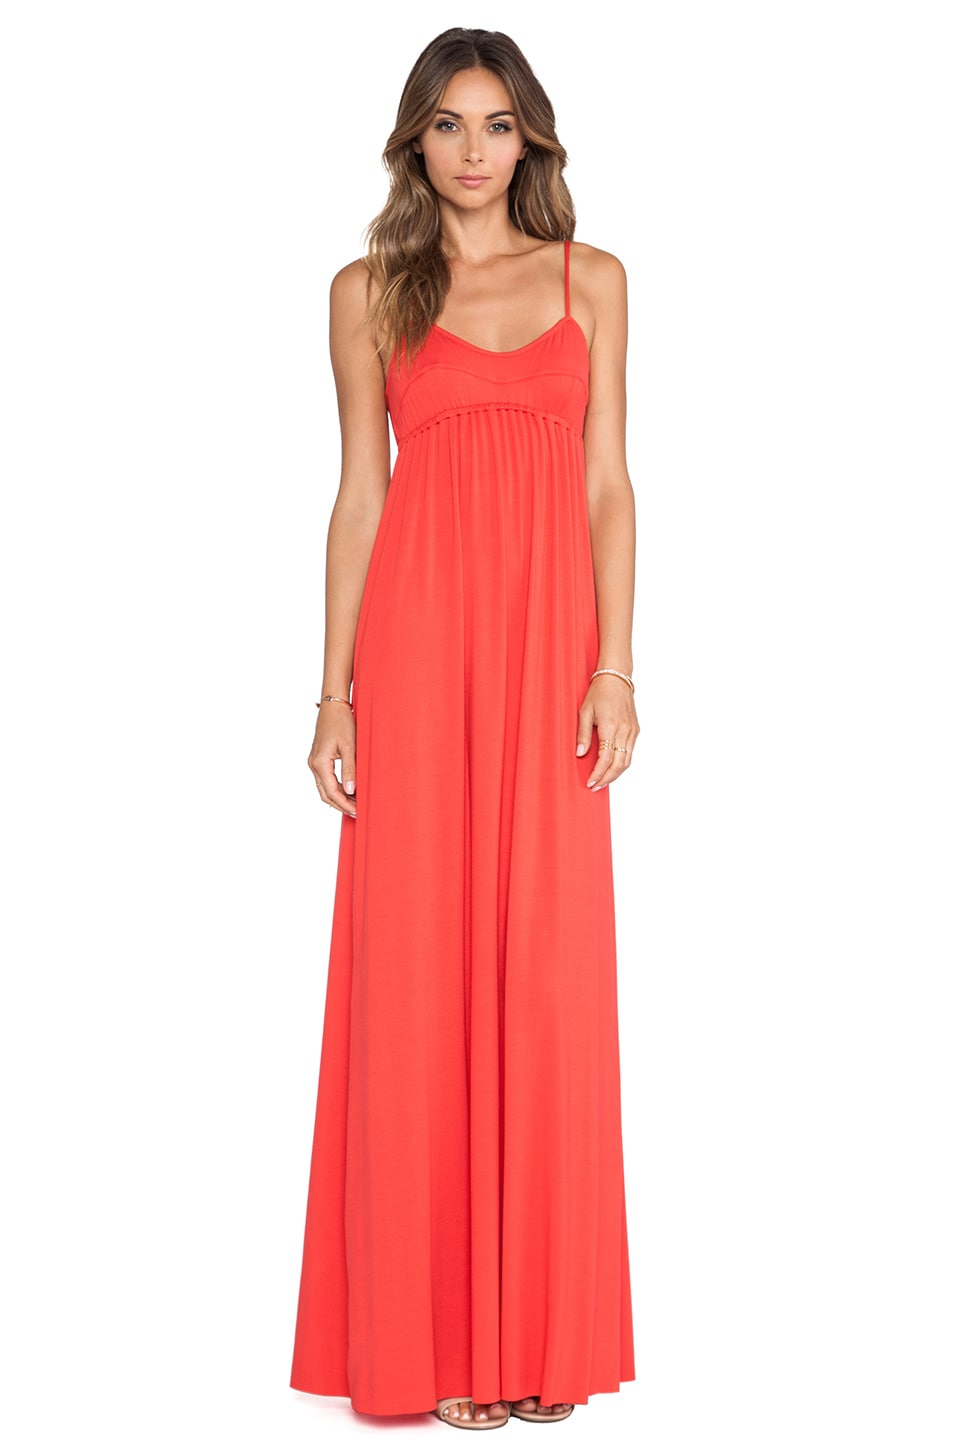 Rachel Pally Crane Maxi Dress in Pom Pom